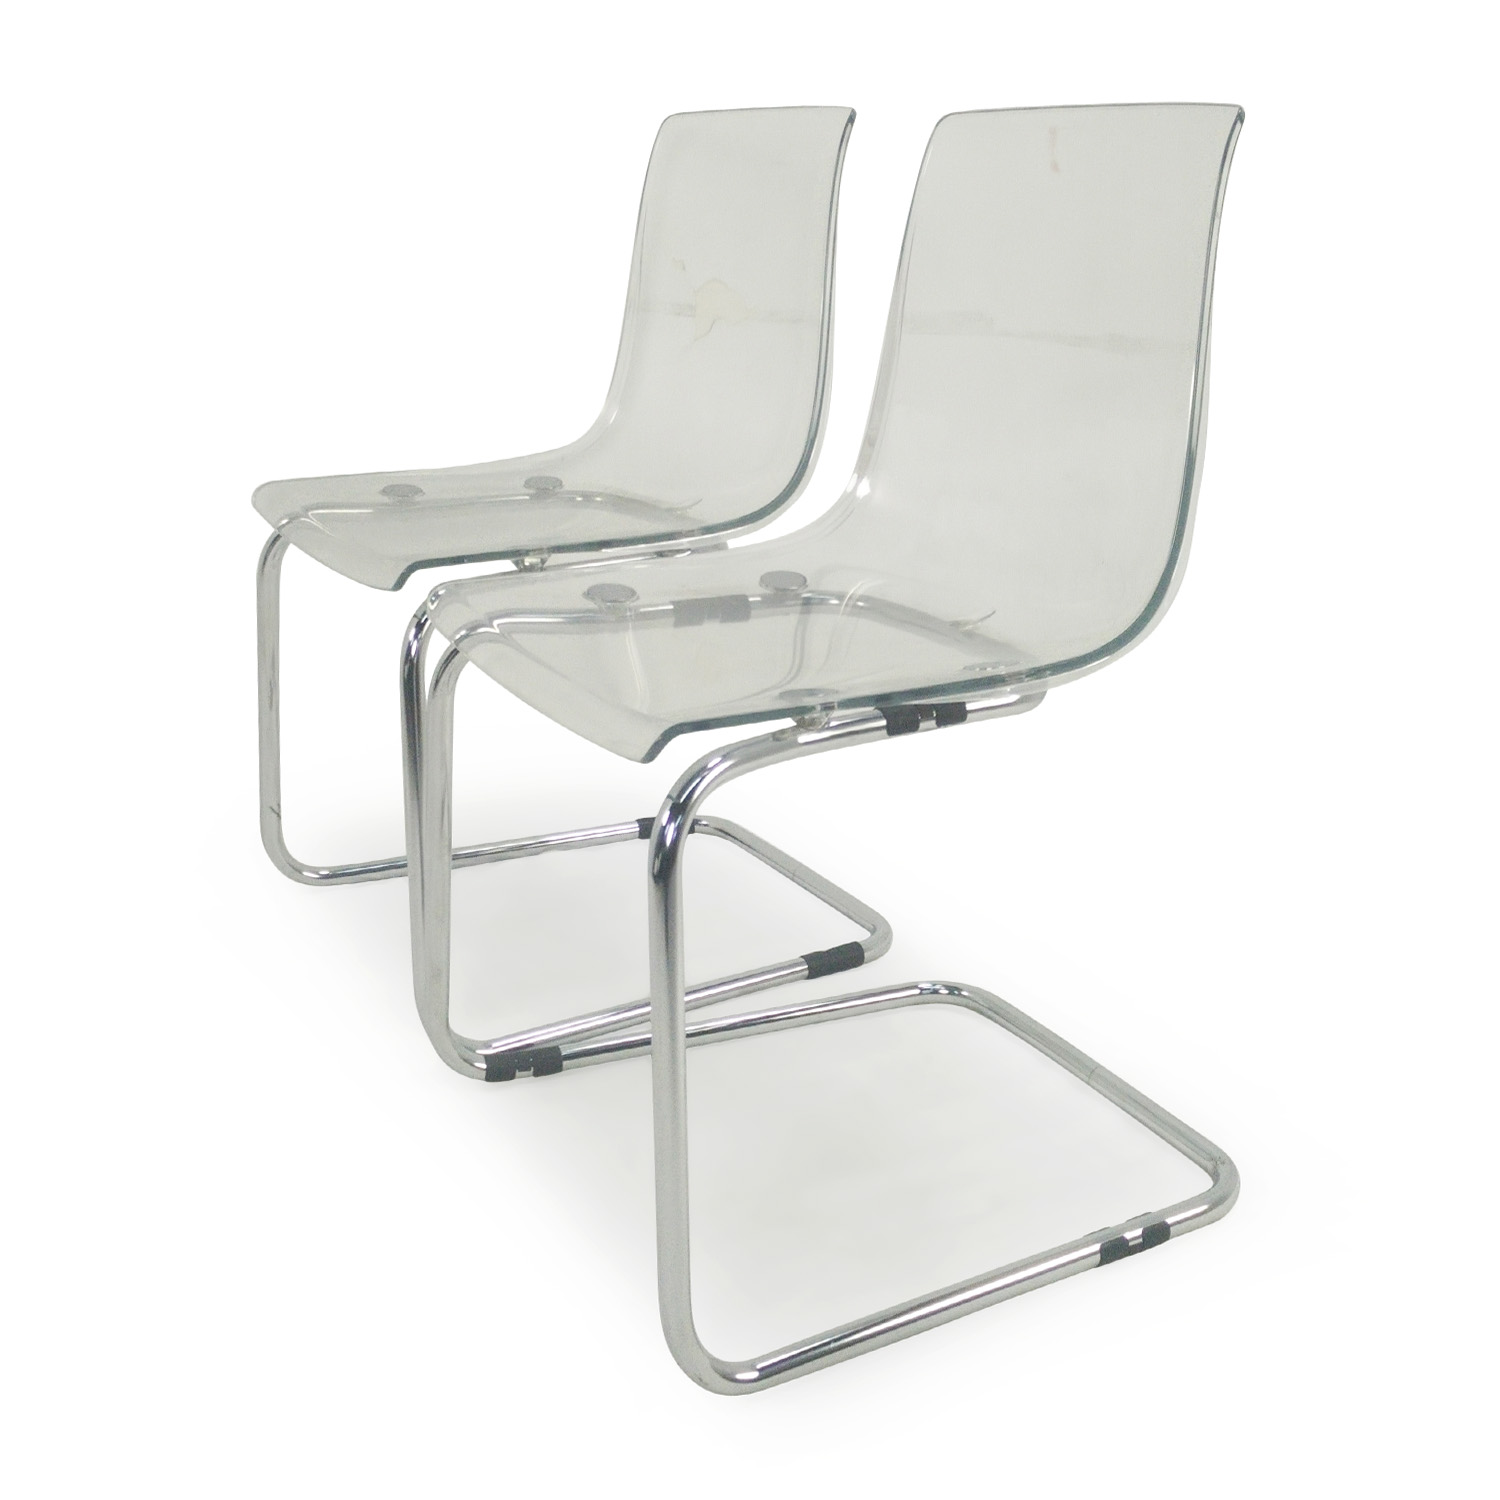 72 off ikea tobias transparent chairs chairs for Chaise tobias ikea